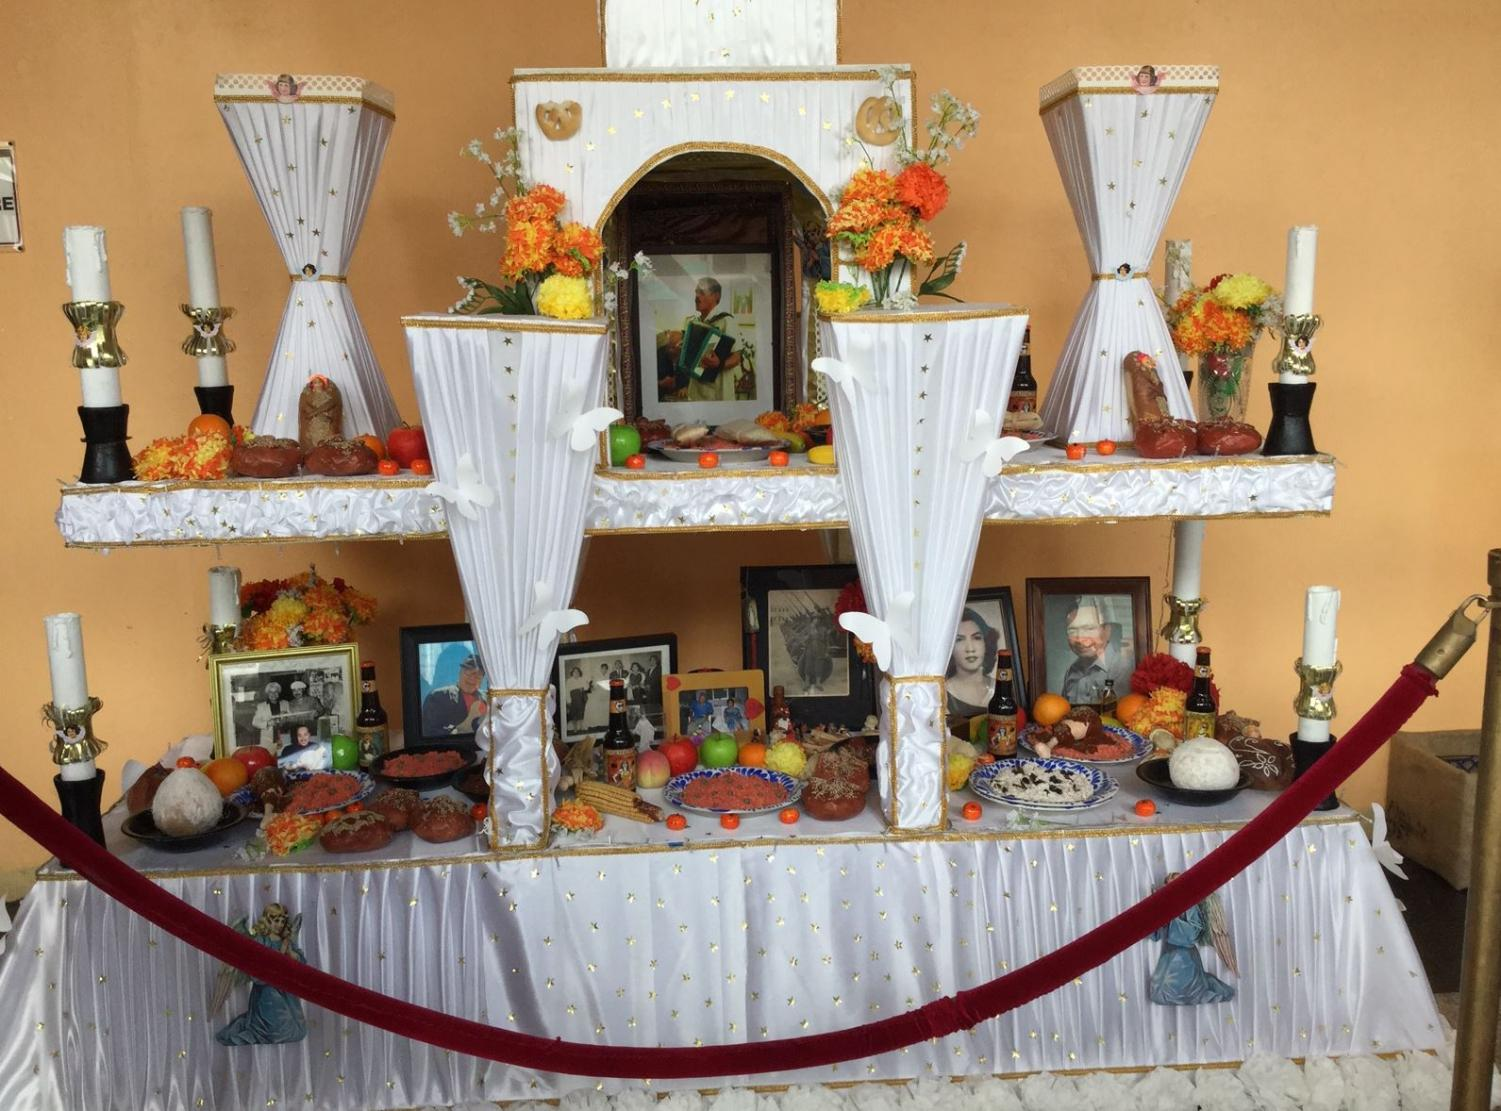 The MCCLA displayed a traditional Día de Muertos altar.